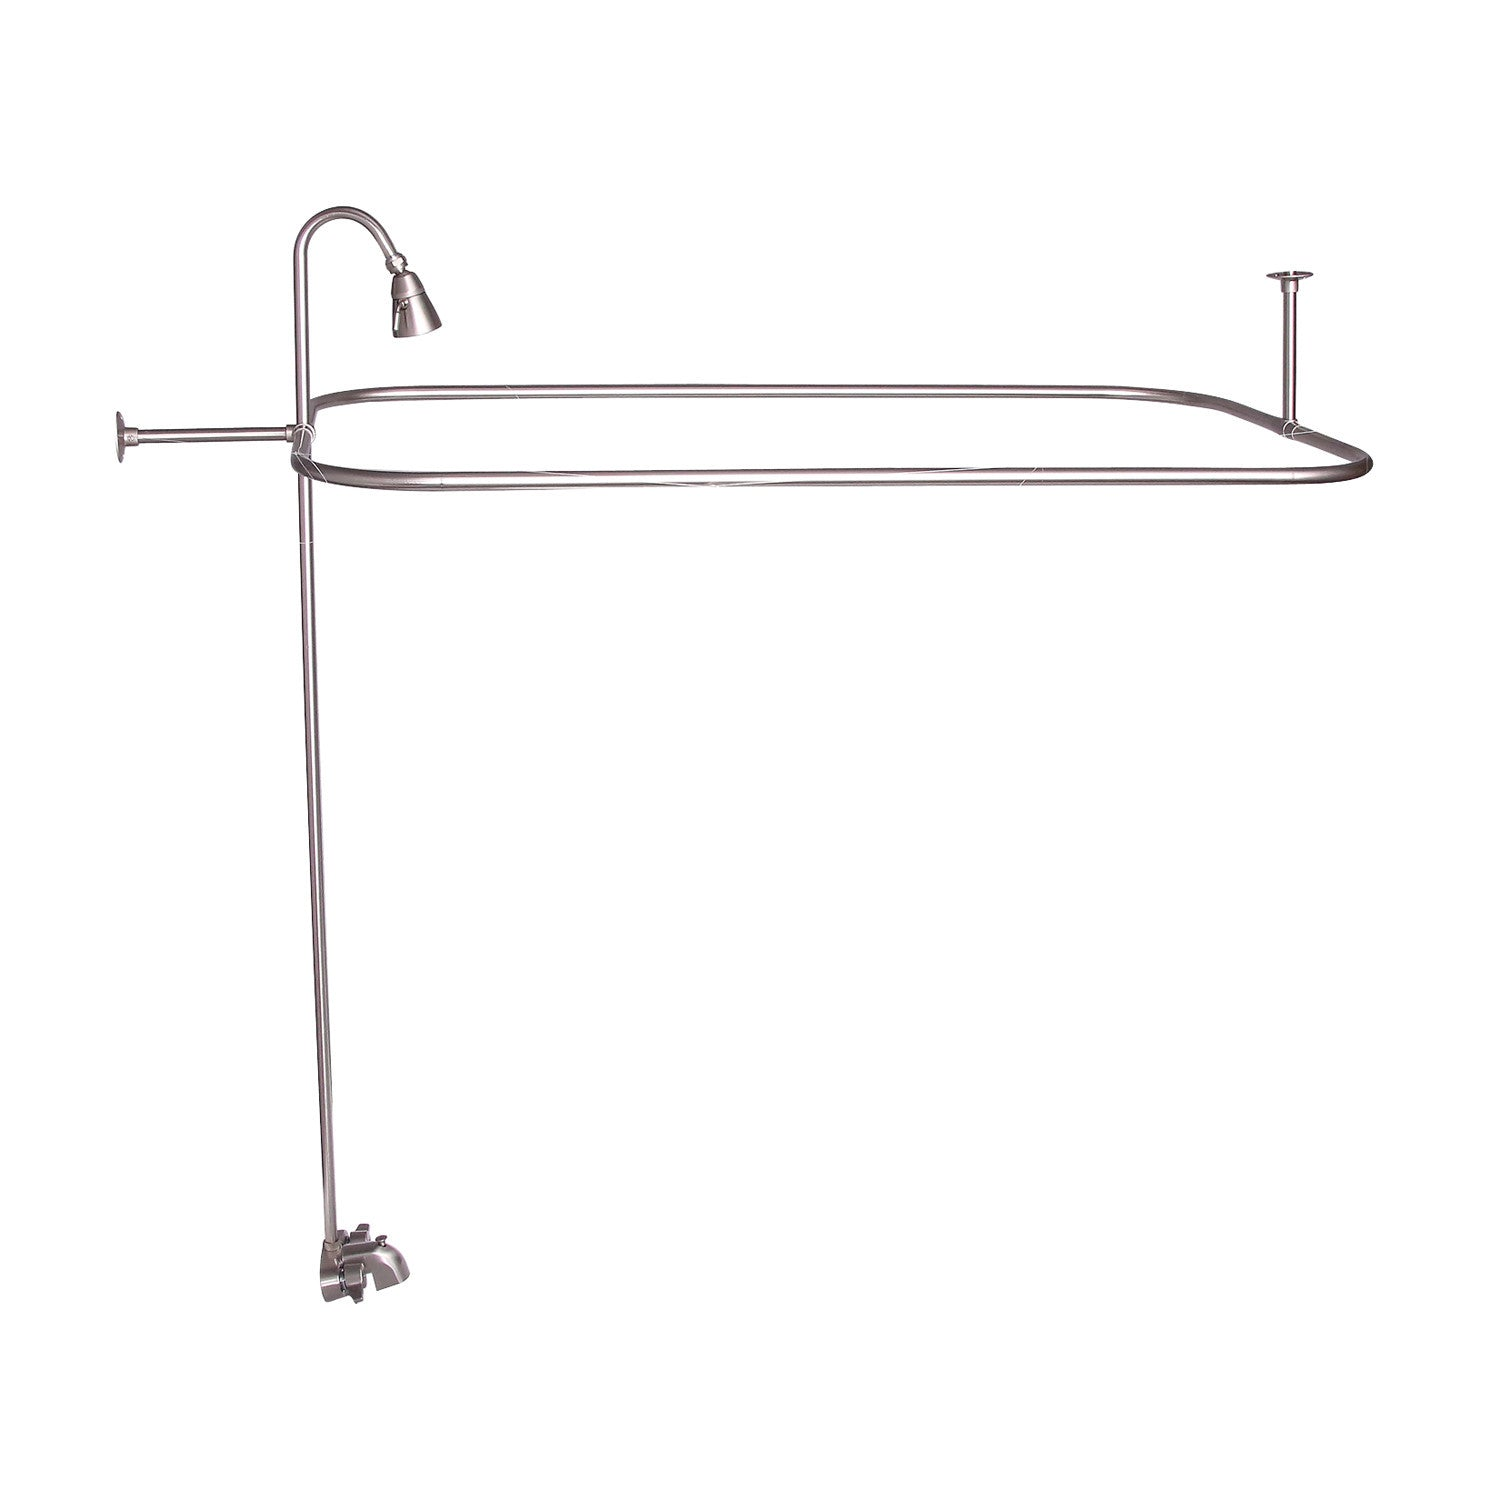 Barclay Products 4190-48 Rectangular Shower Unit – 48″ x 24″ with End Wall Support